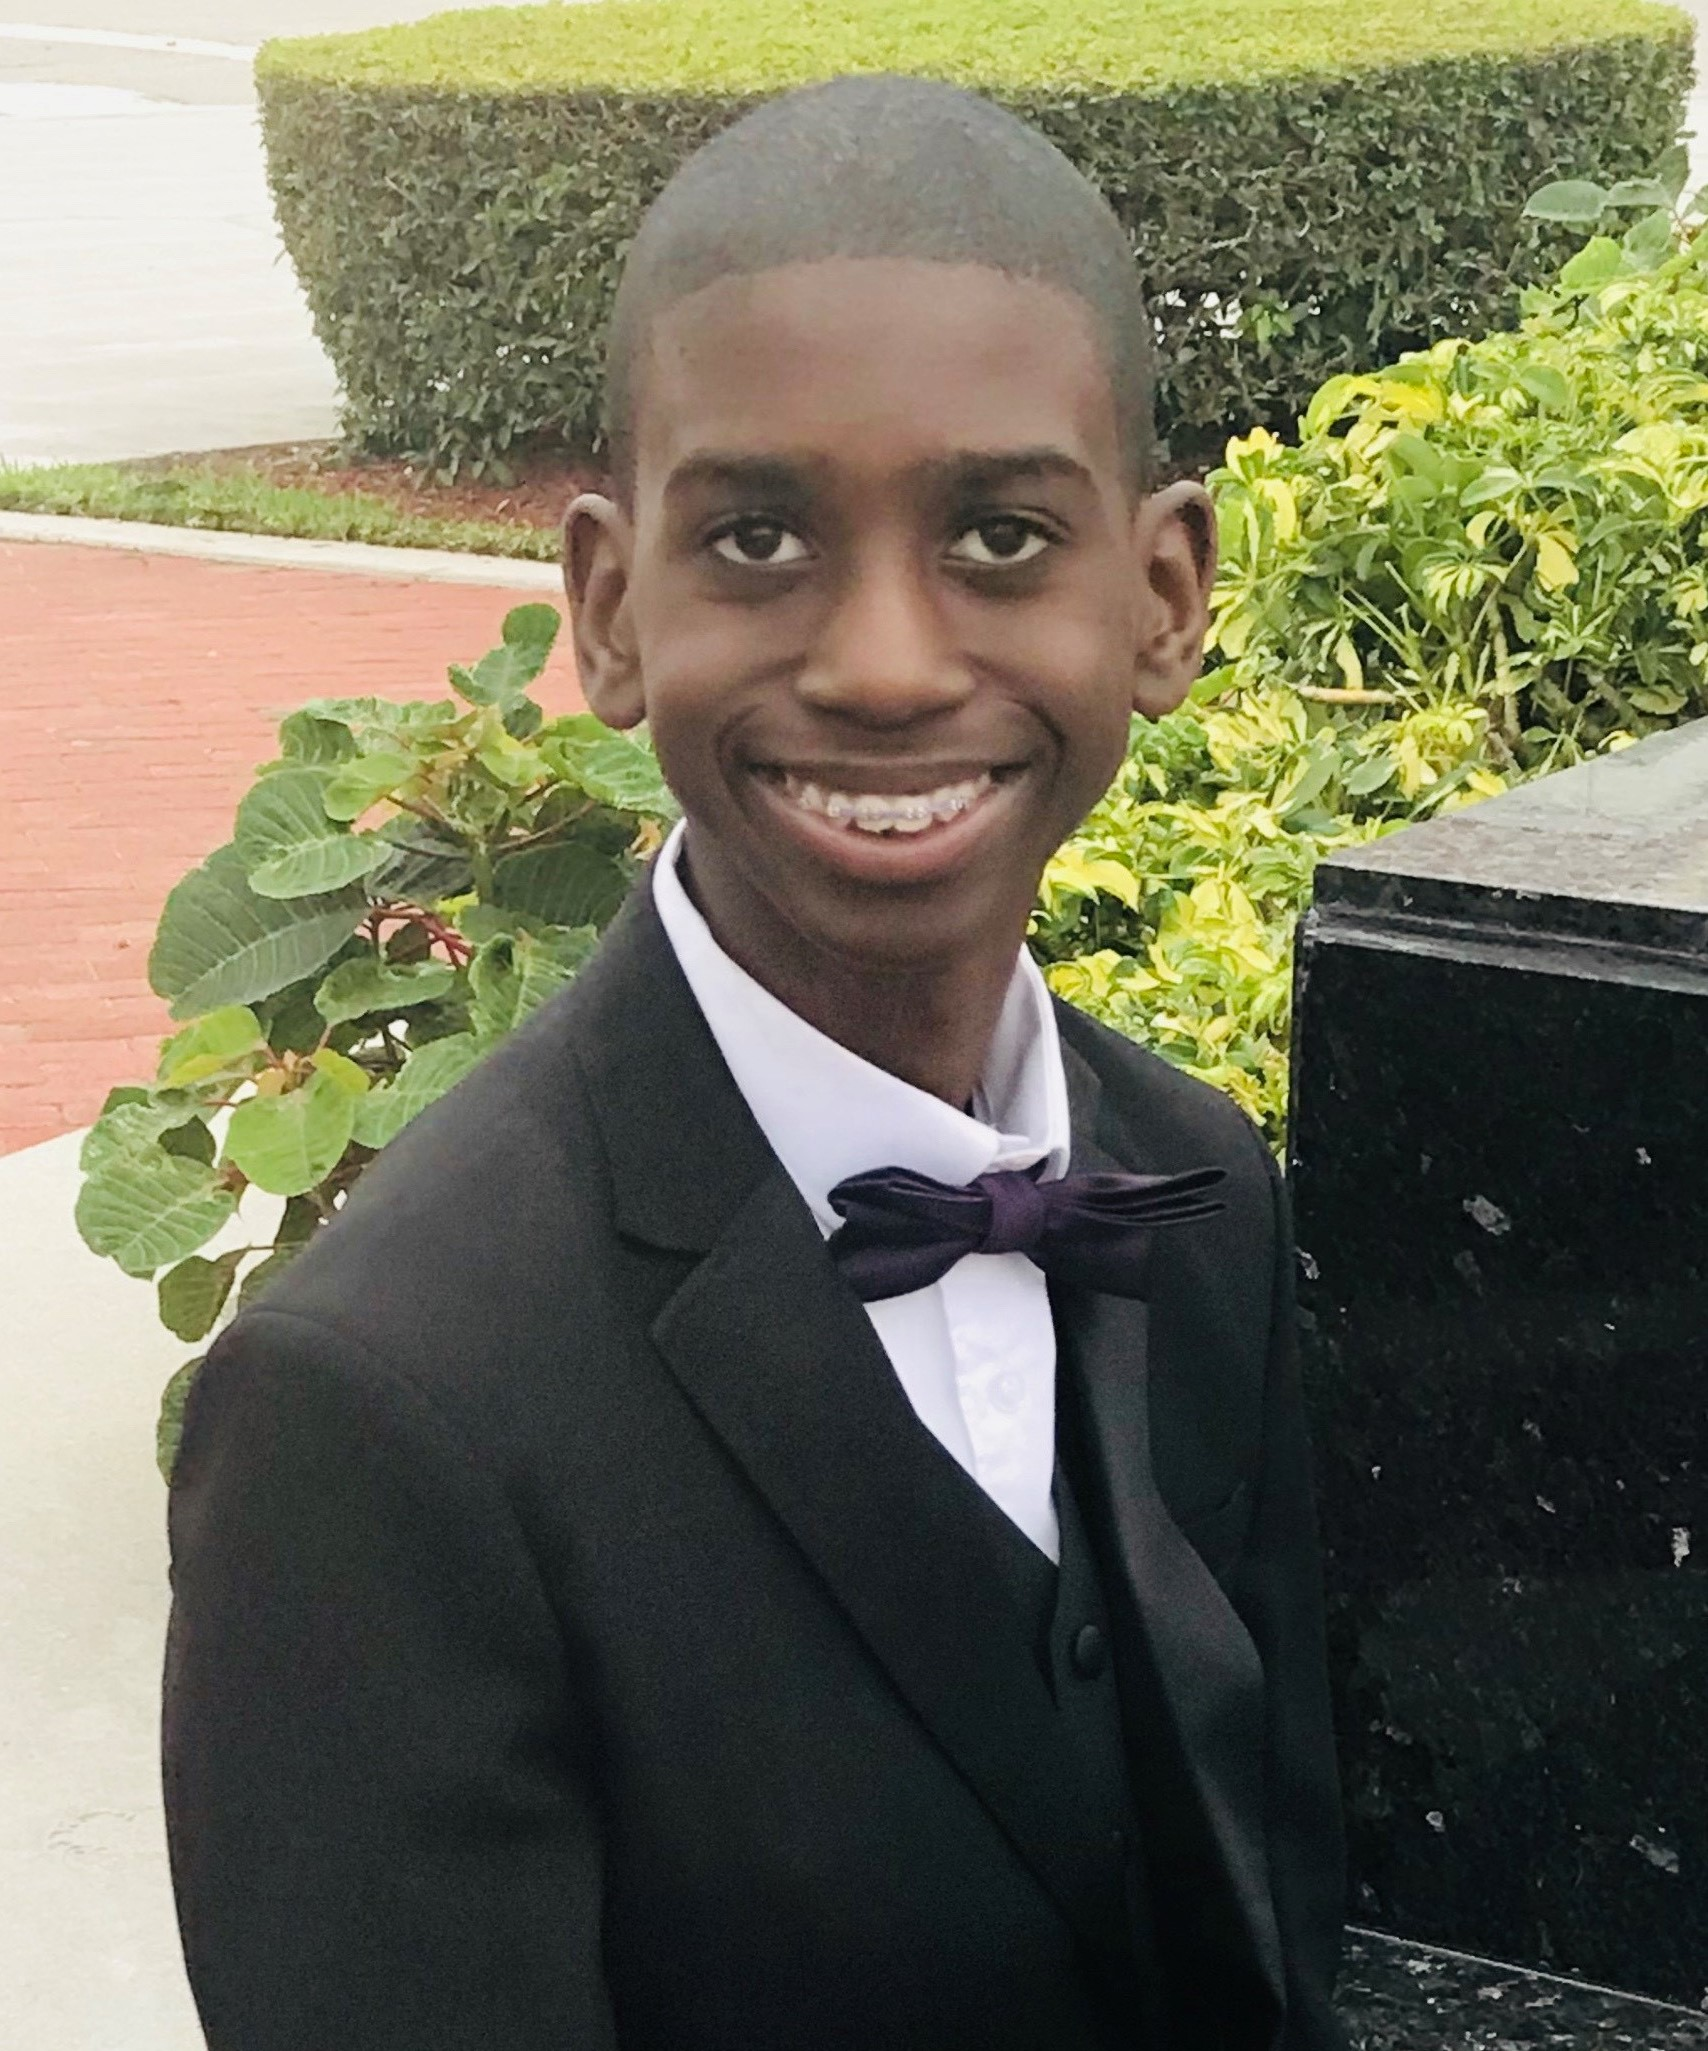 Photo of Joseph Etienne, Florida Young Soloist 2019